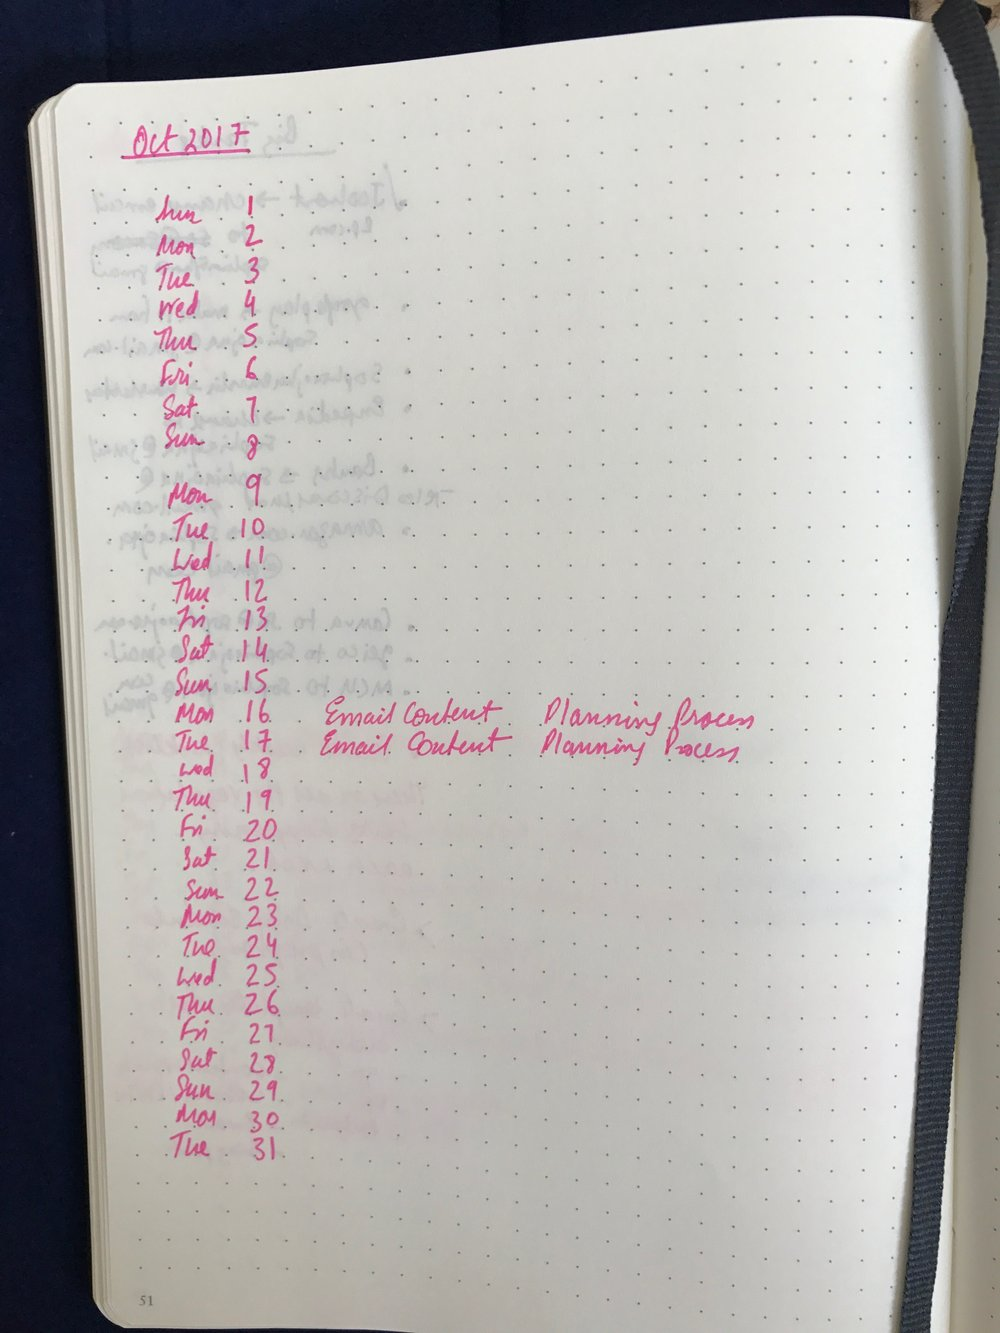 This is a page from my Bullet Journal where you can see my two Email Content Planning Days: Oct 16th and 17th.